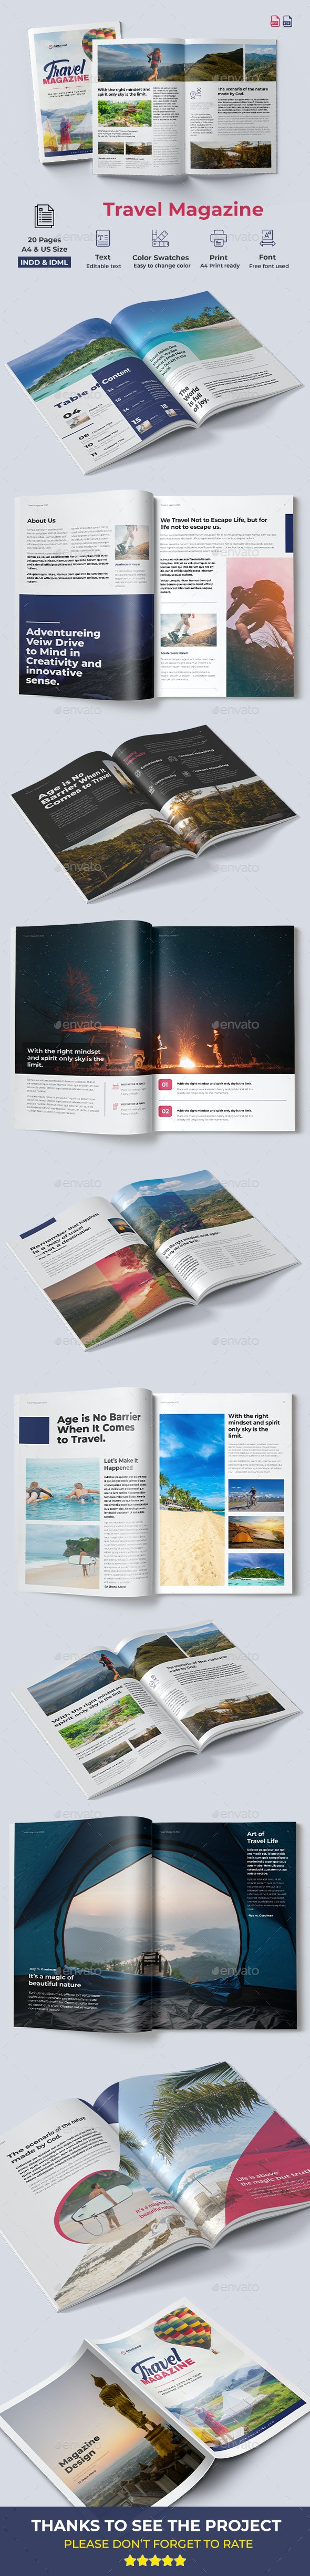 Travel Magazine Design - Magazines Print Templates